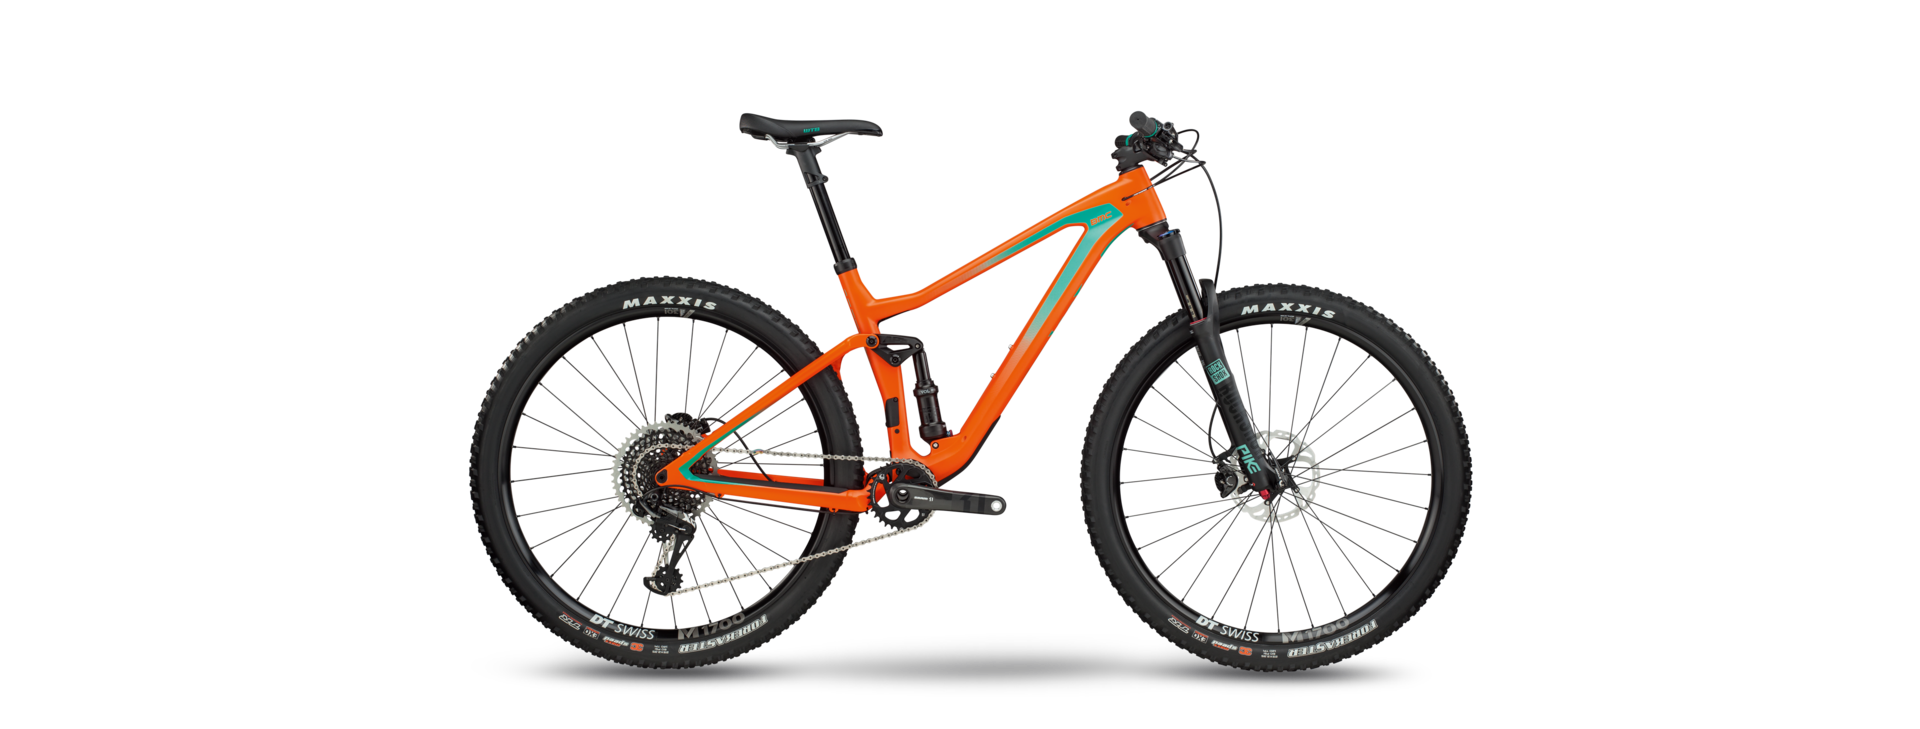 BMC SPEEDFOX SF02 ONE 2018